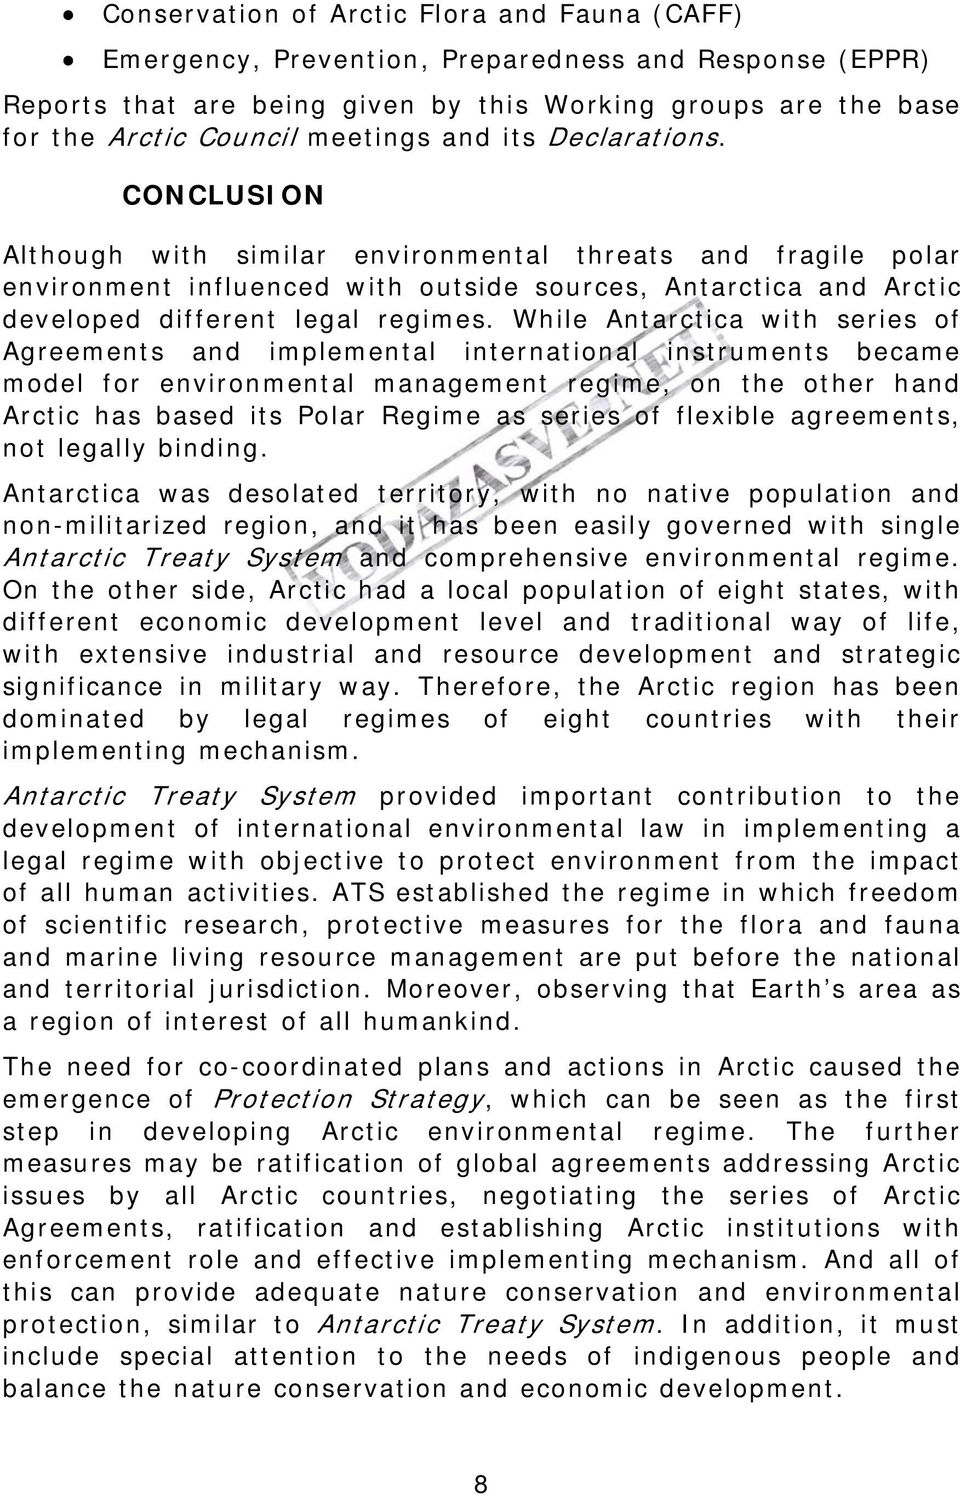 While Antarctica with series of Agreements and implemental international instruments became model for environmental management regime, on the other hand Arctic has based its Polar Regime as series of